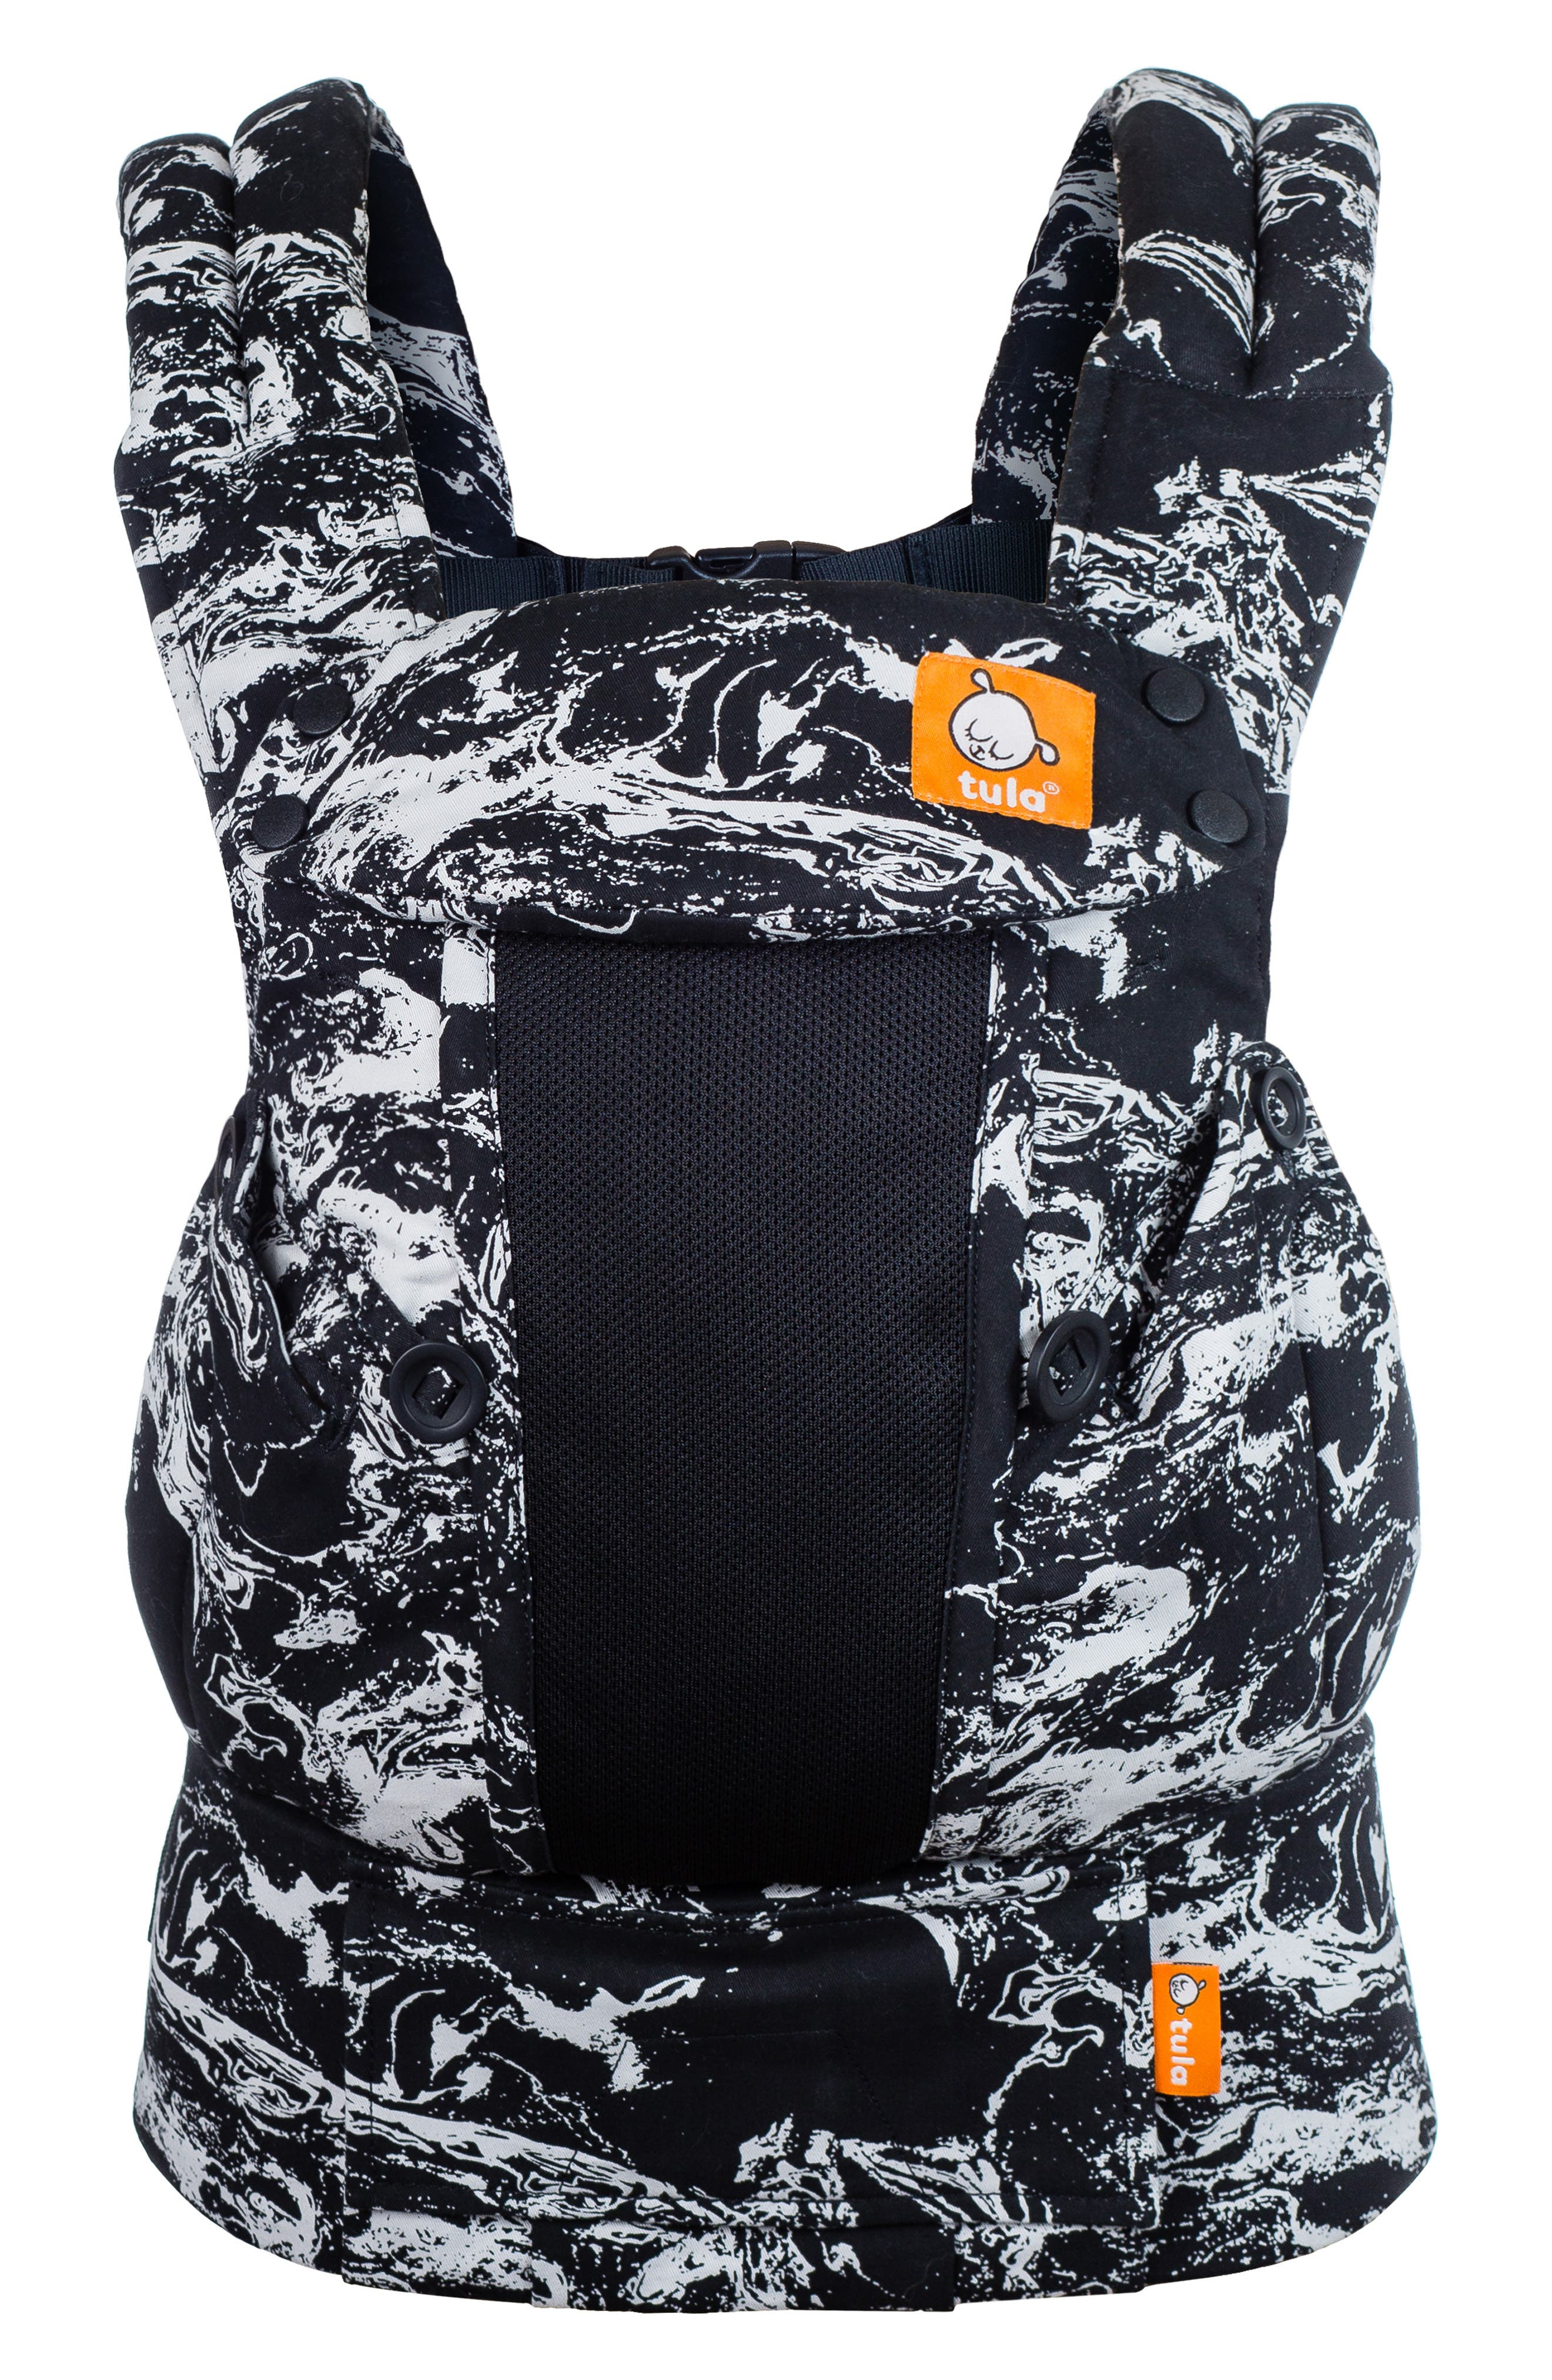 Infant Baby Tula Explore Breathable Mesh Frontback Baby Carrier Size One Size  Black